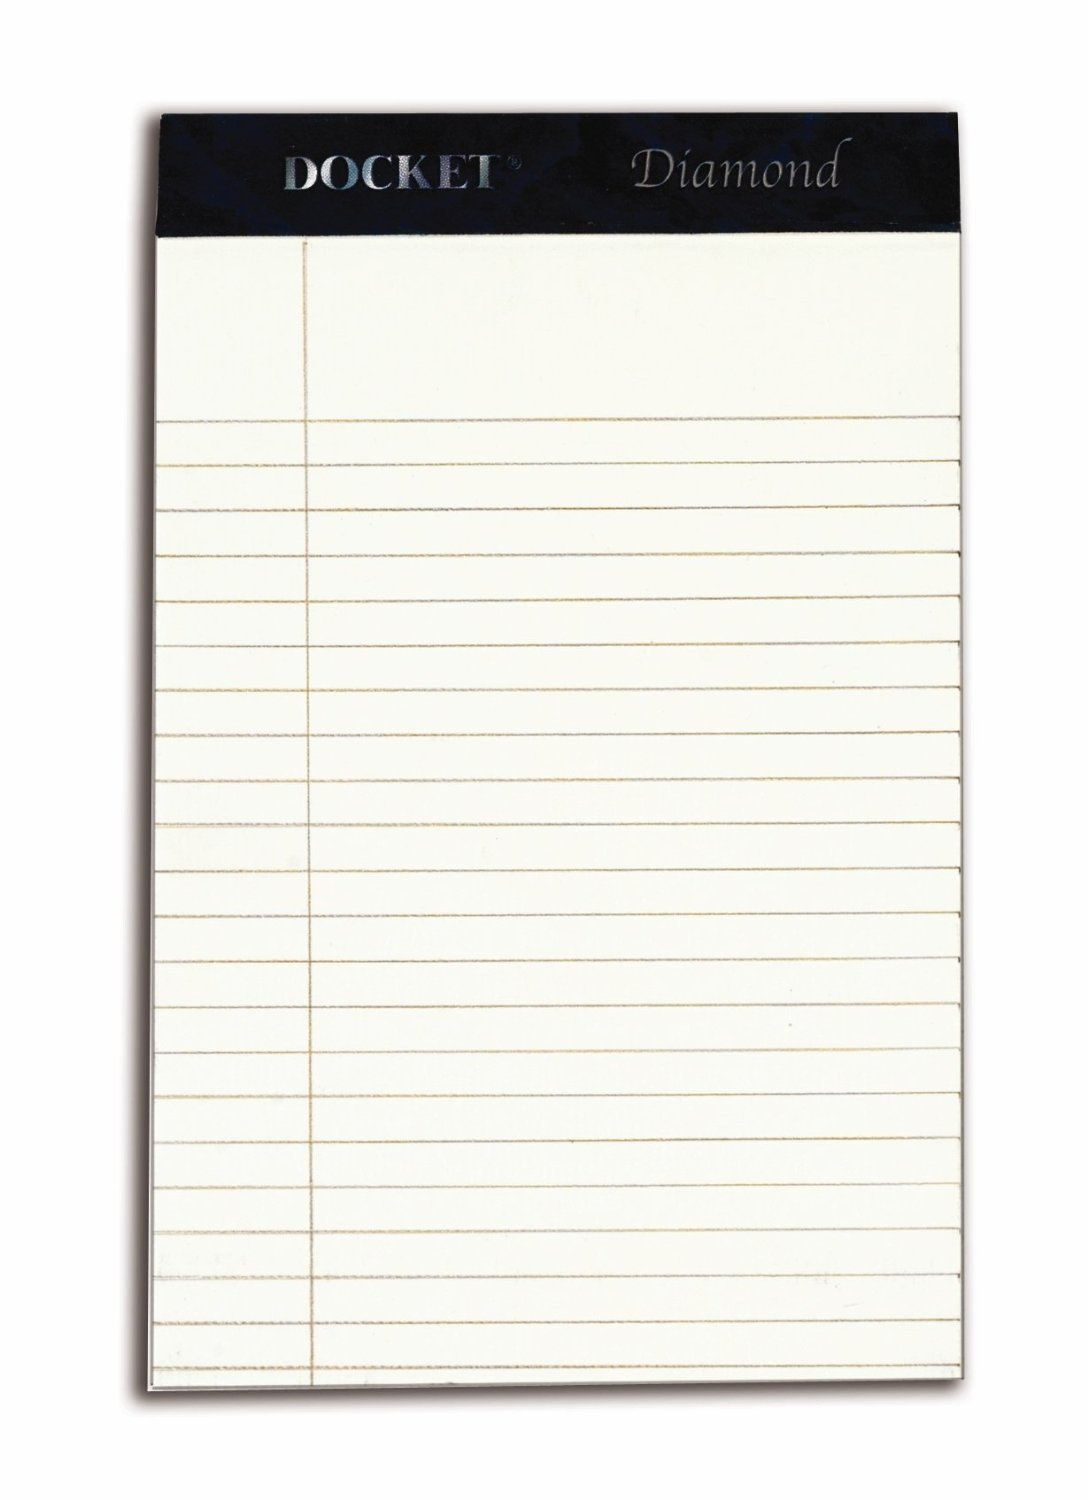 TOPS Docket Diamond 100% Recycled Premium Stationery Tablet, 5 x 8 Inches, Perforated, Ivory, Narrow Rule, 50 Sheets per Pad, 4 Pads per Pack (63982)